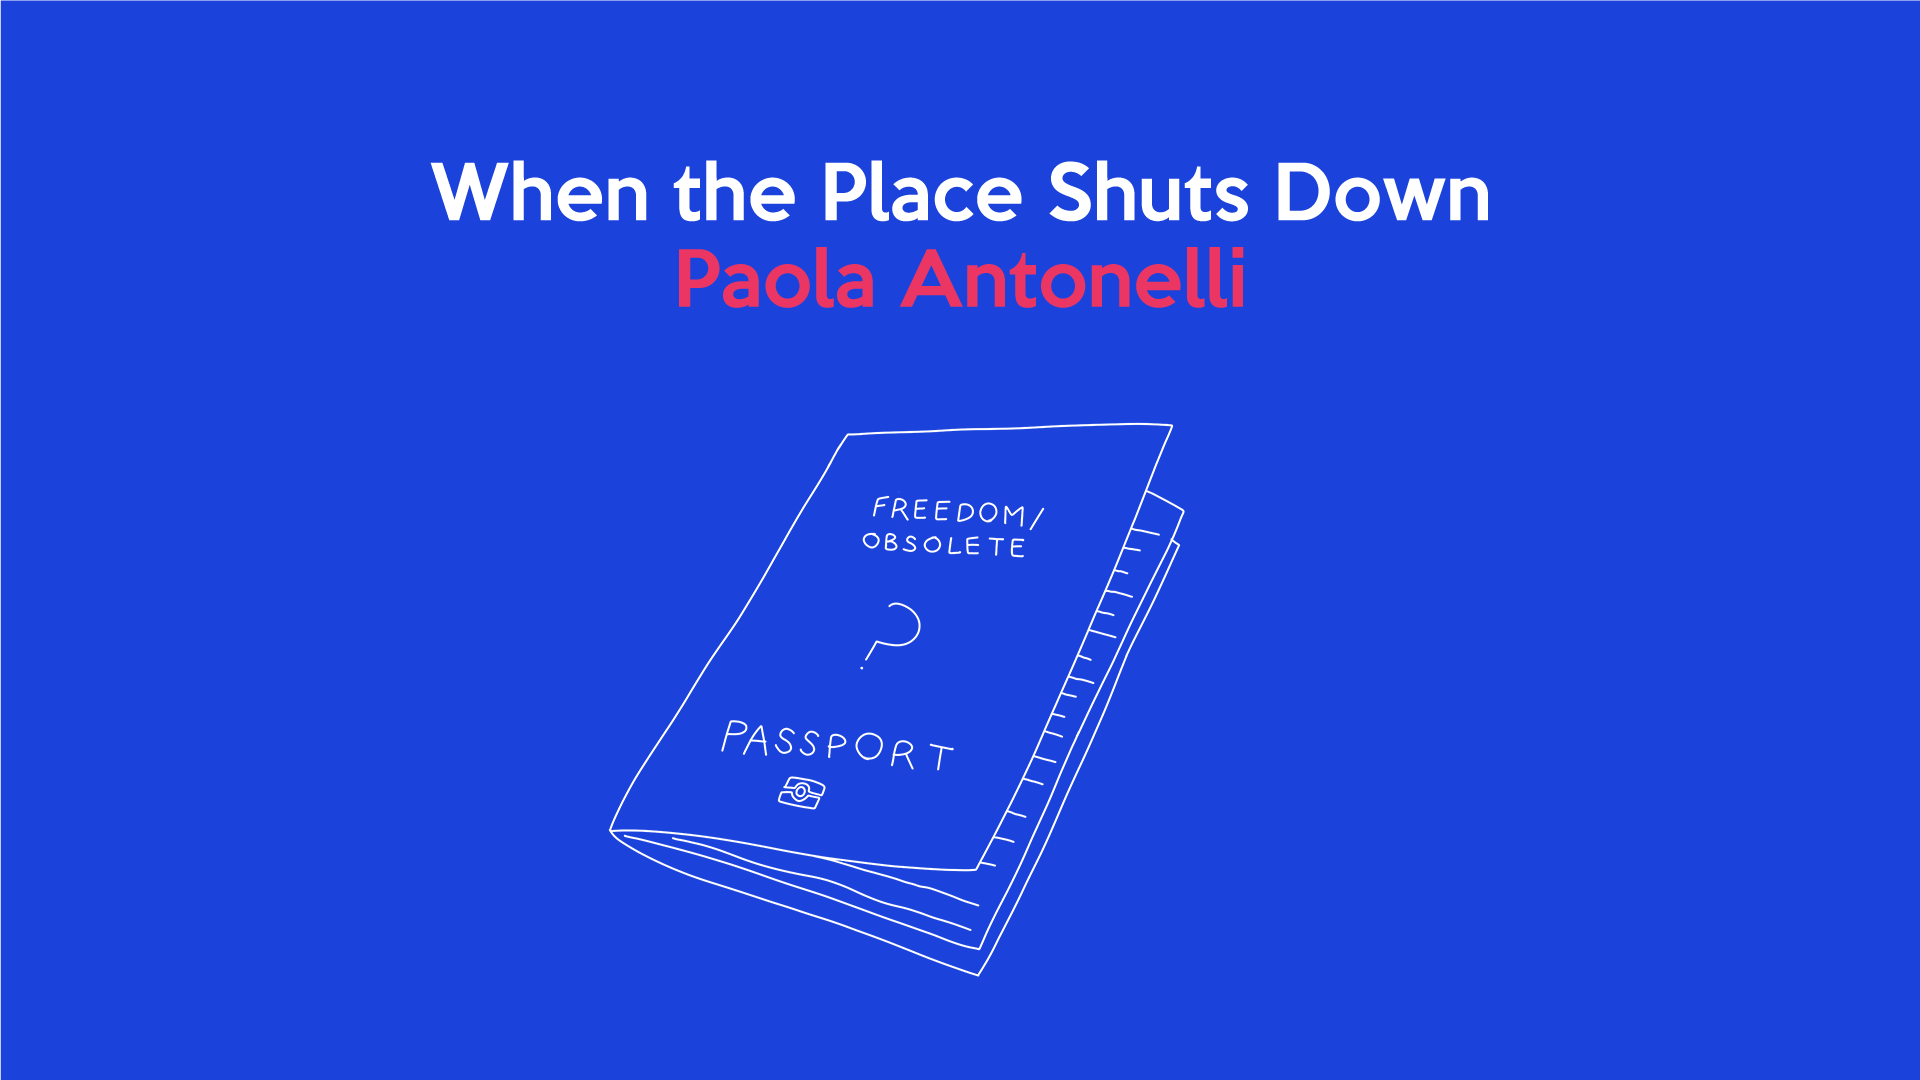 When The Place Shuts Down: Paola Antonelli